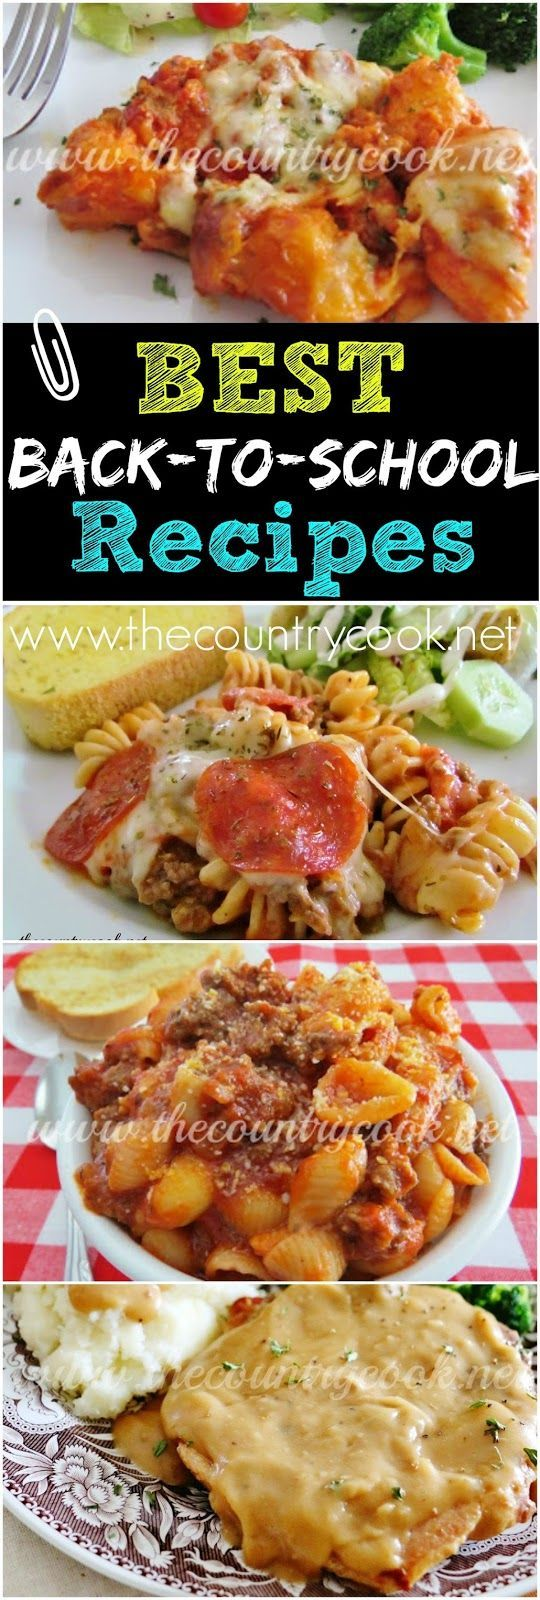 40 *BEST* Back-to-School Recipes from The Country Cook. Simple, budget-friendly, kid-friendly meals. The Bubble Up Lasagna and Pizza are some of my favorites.